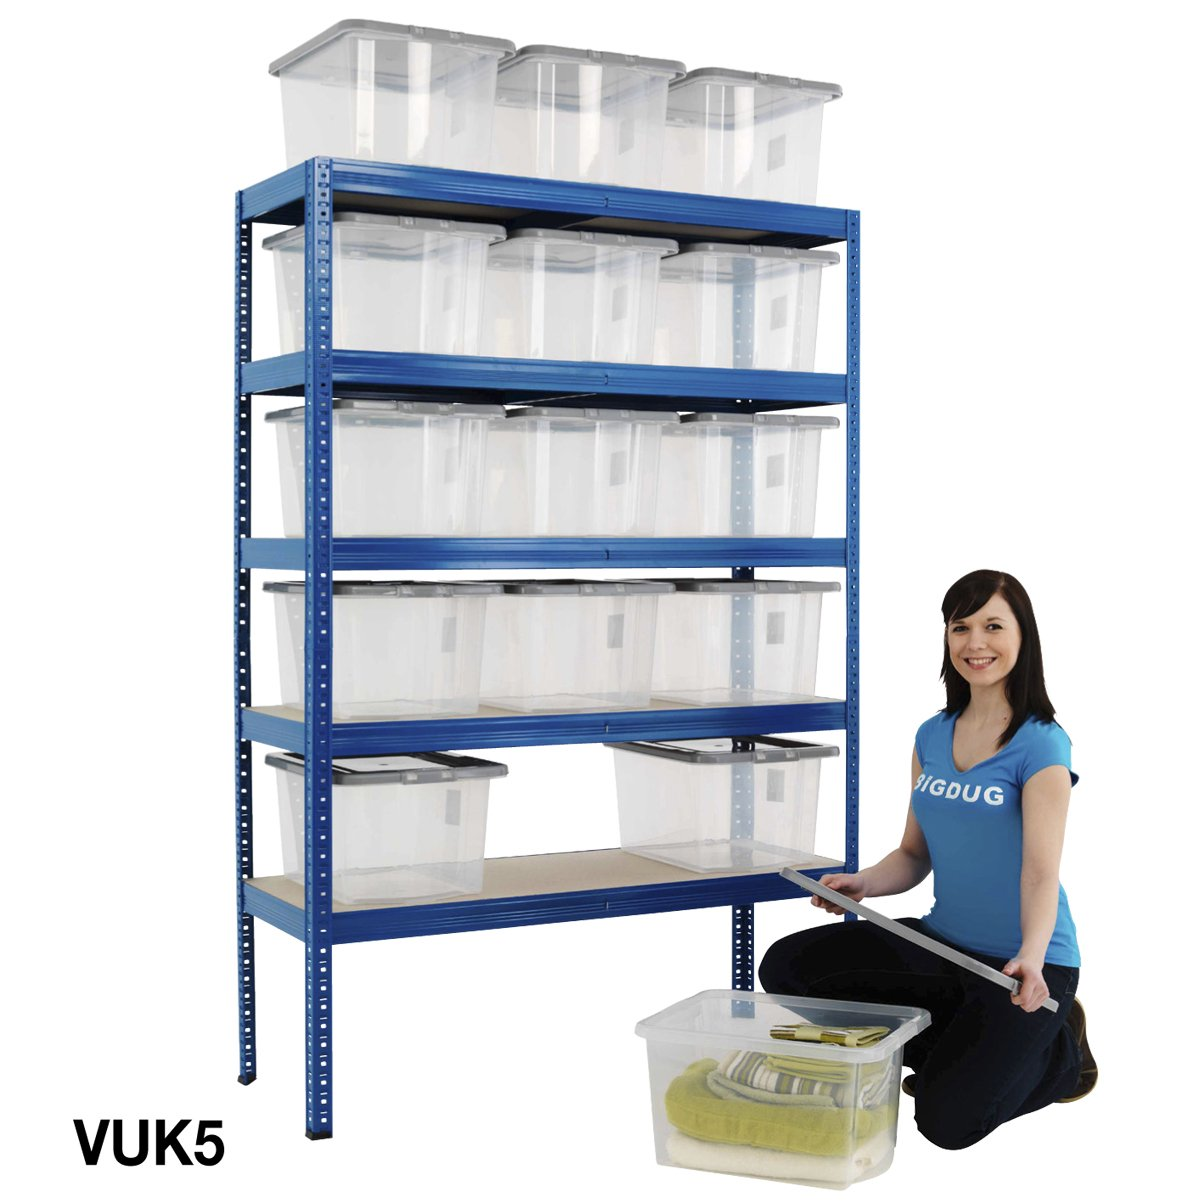 Garage Shelving Bays With 30 Litre Plastic Boxes 5 Tier 150kg UDL Storage Solution 6 Sizes (2040h x 1200w x 450d mm (15 Boxes))       Customer reviews and more information